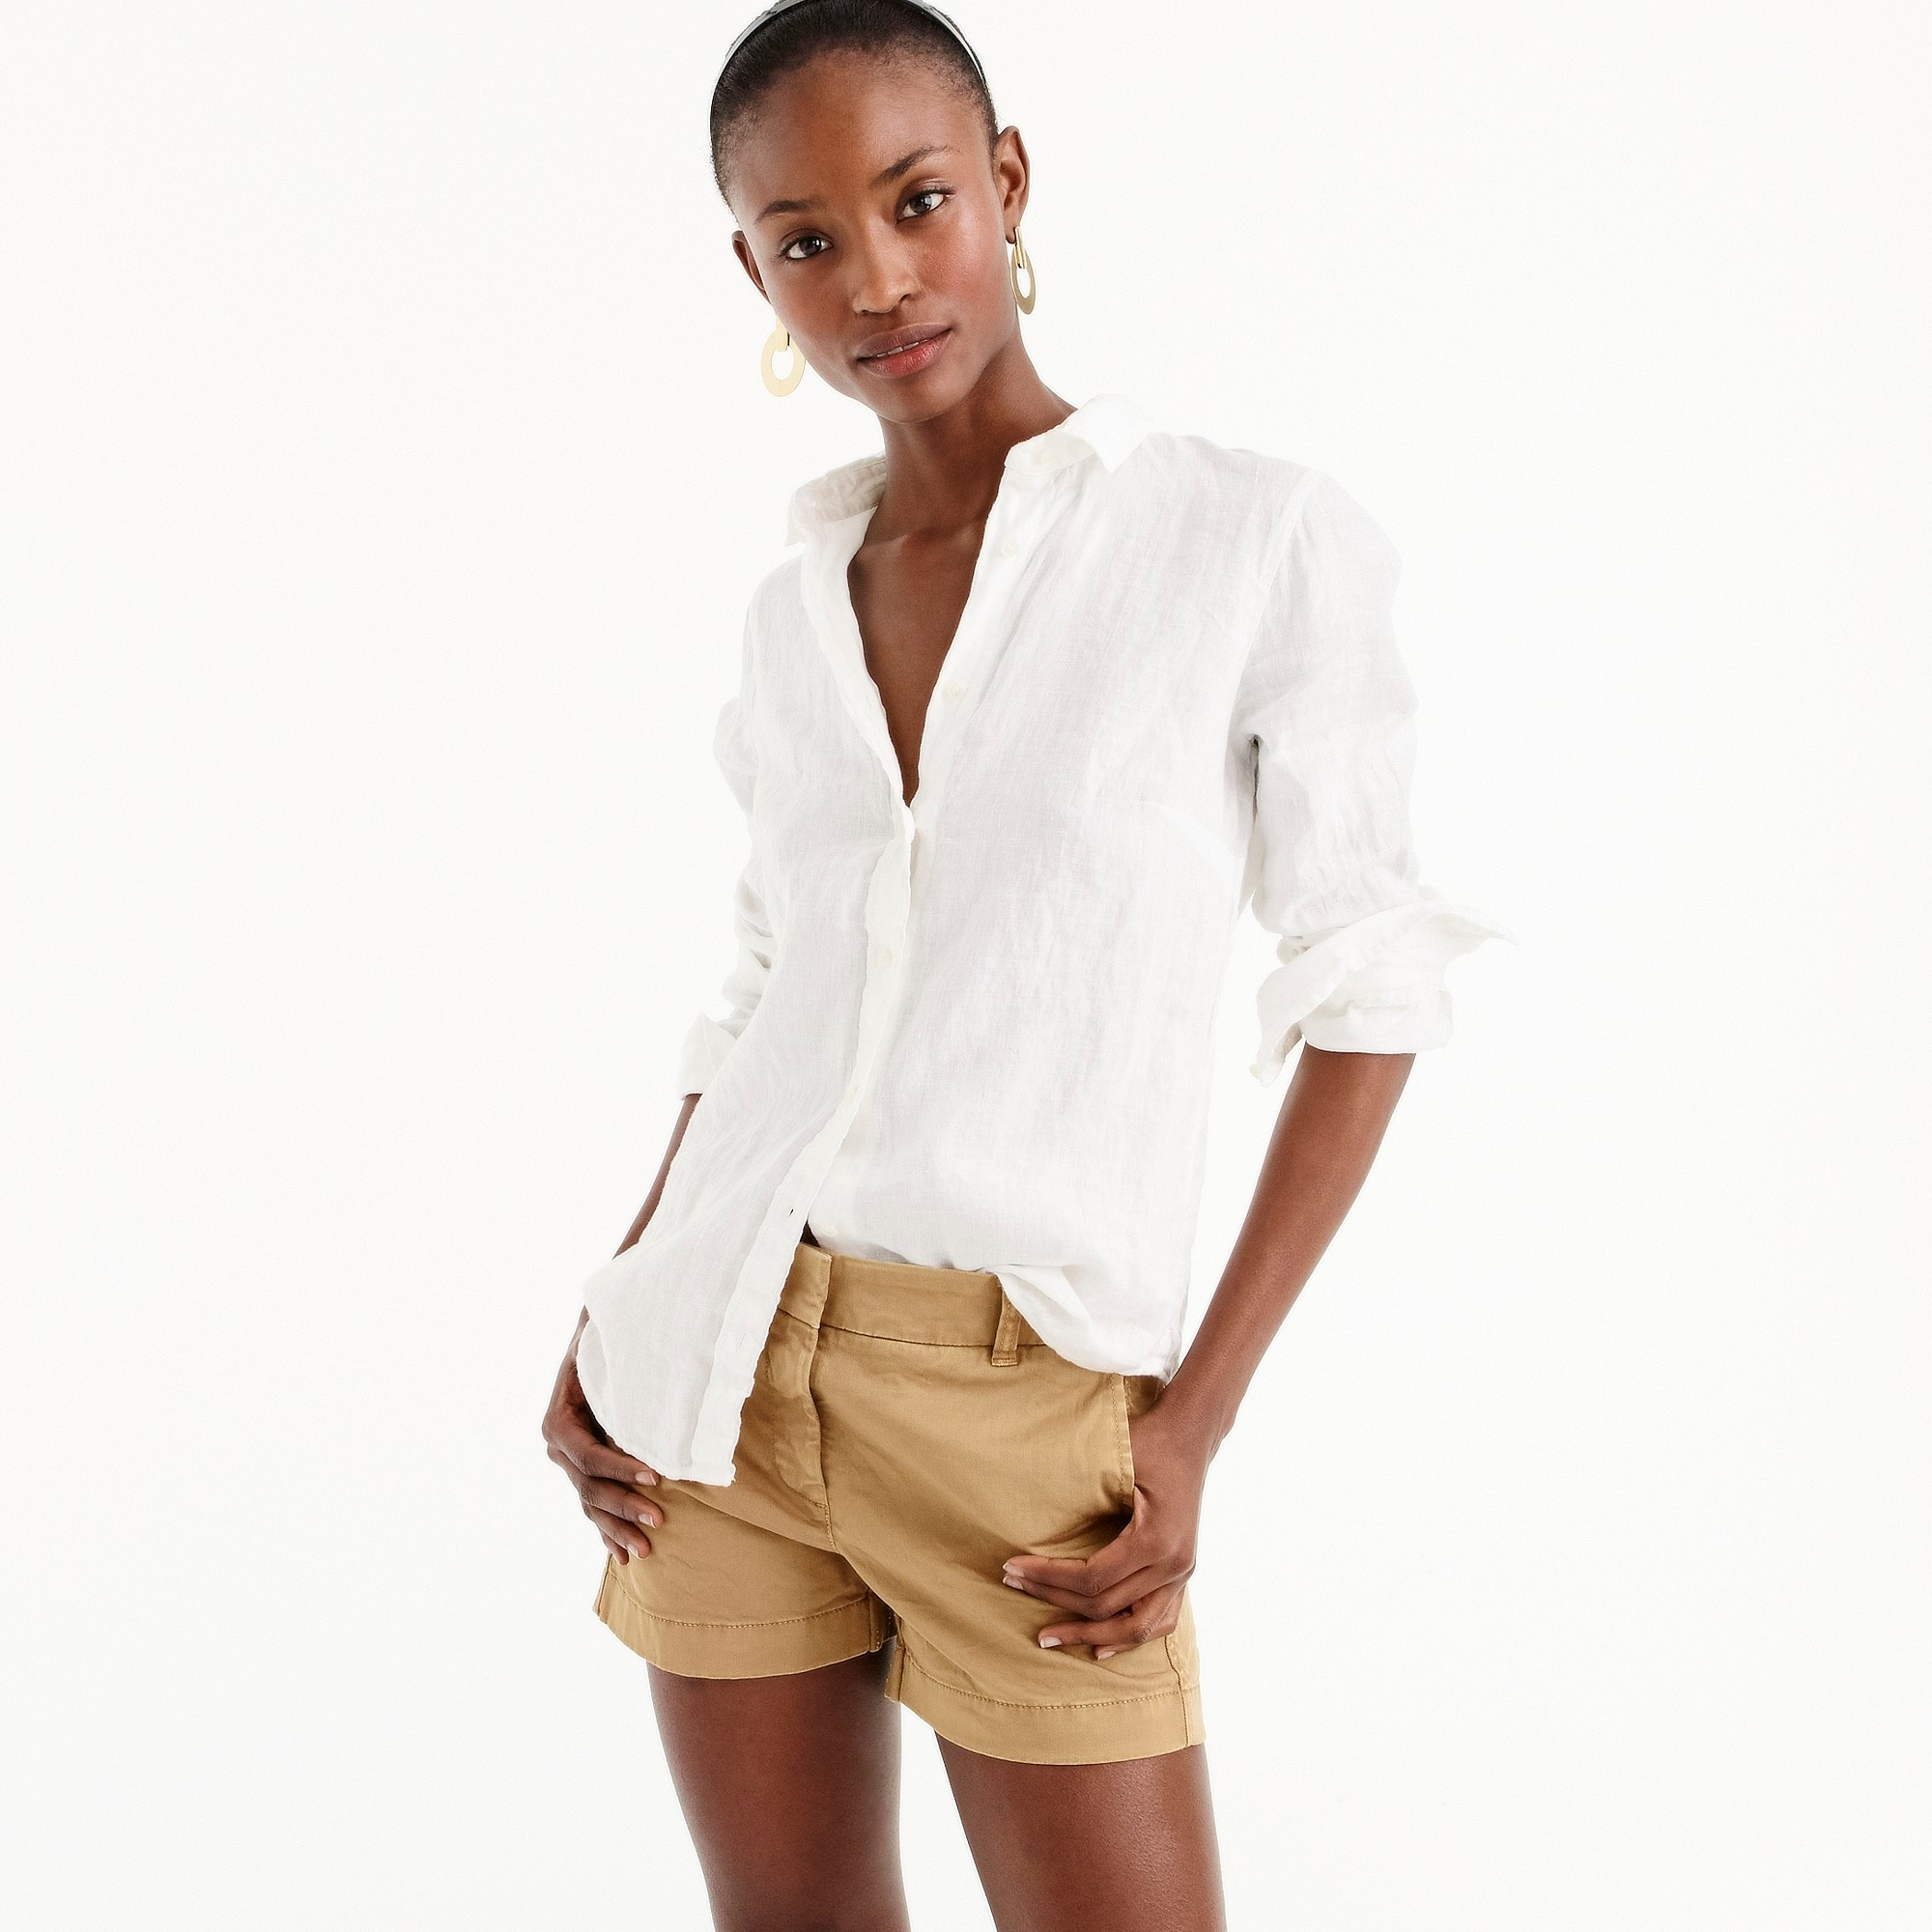 Slim perfect shirt in piece-dyed Irish linen women shirts & tops c